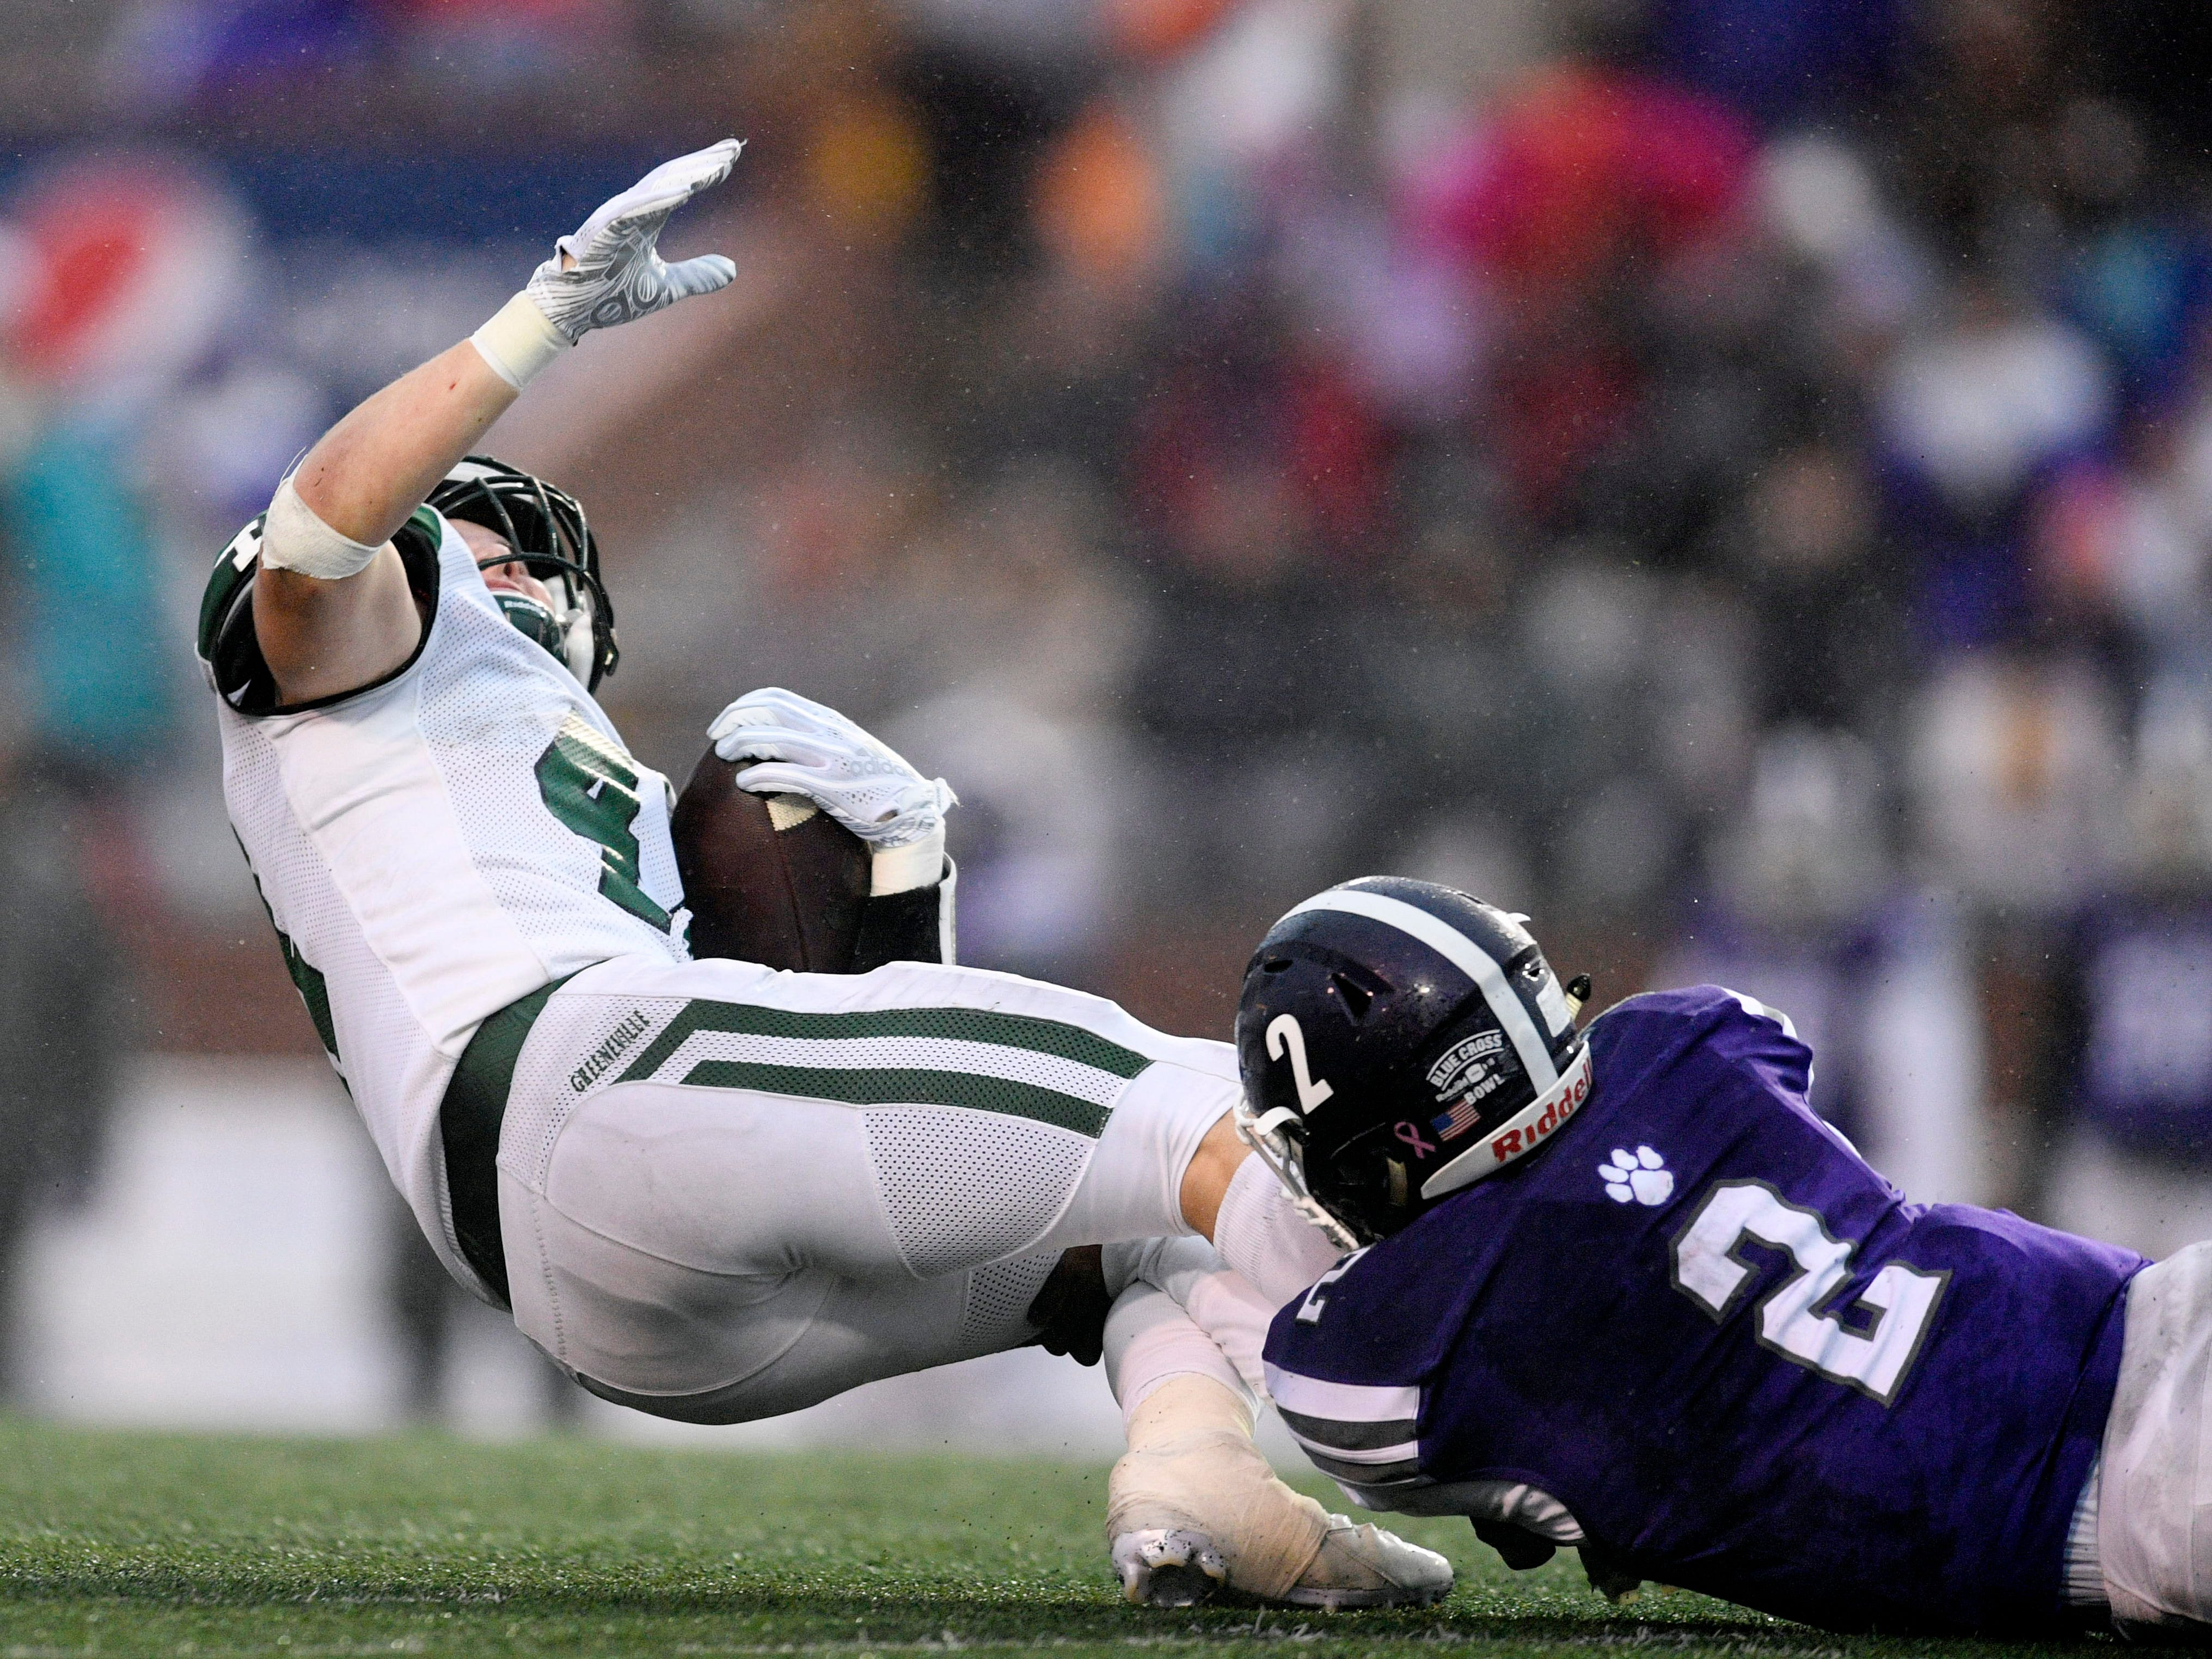 Greeneville's Blayne Ferguson (4) is stopped in the first half by Haywood's Deyondrius Hines (2) in the first half of the Class 4A BlueCross Bowl state championship at Tennessee Tech's Tucker Stadium in Cookeville, Tenn., on Thursday, Nov. 29, 2018.